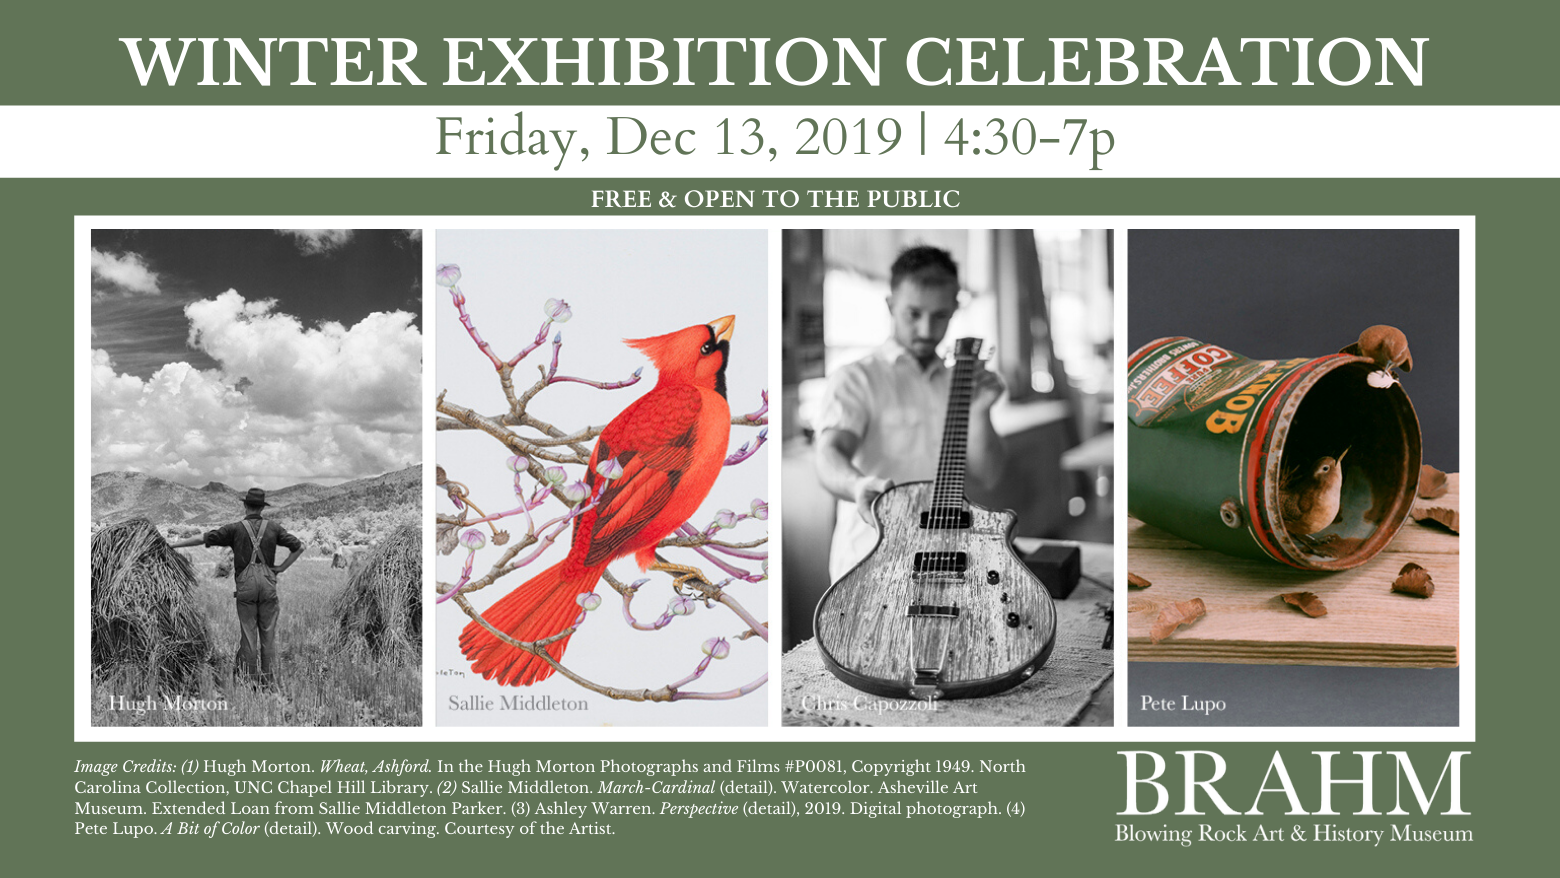 Winter Exhibition Celebration